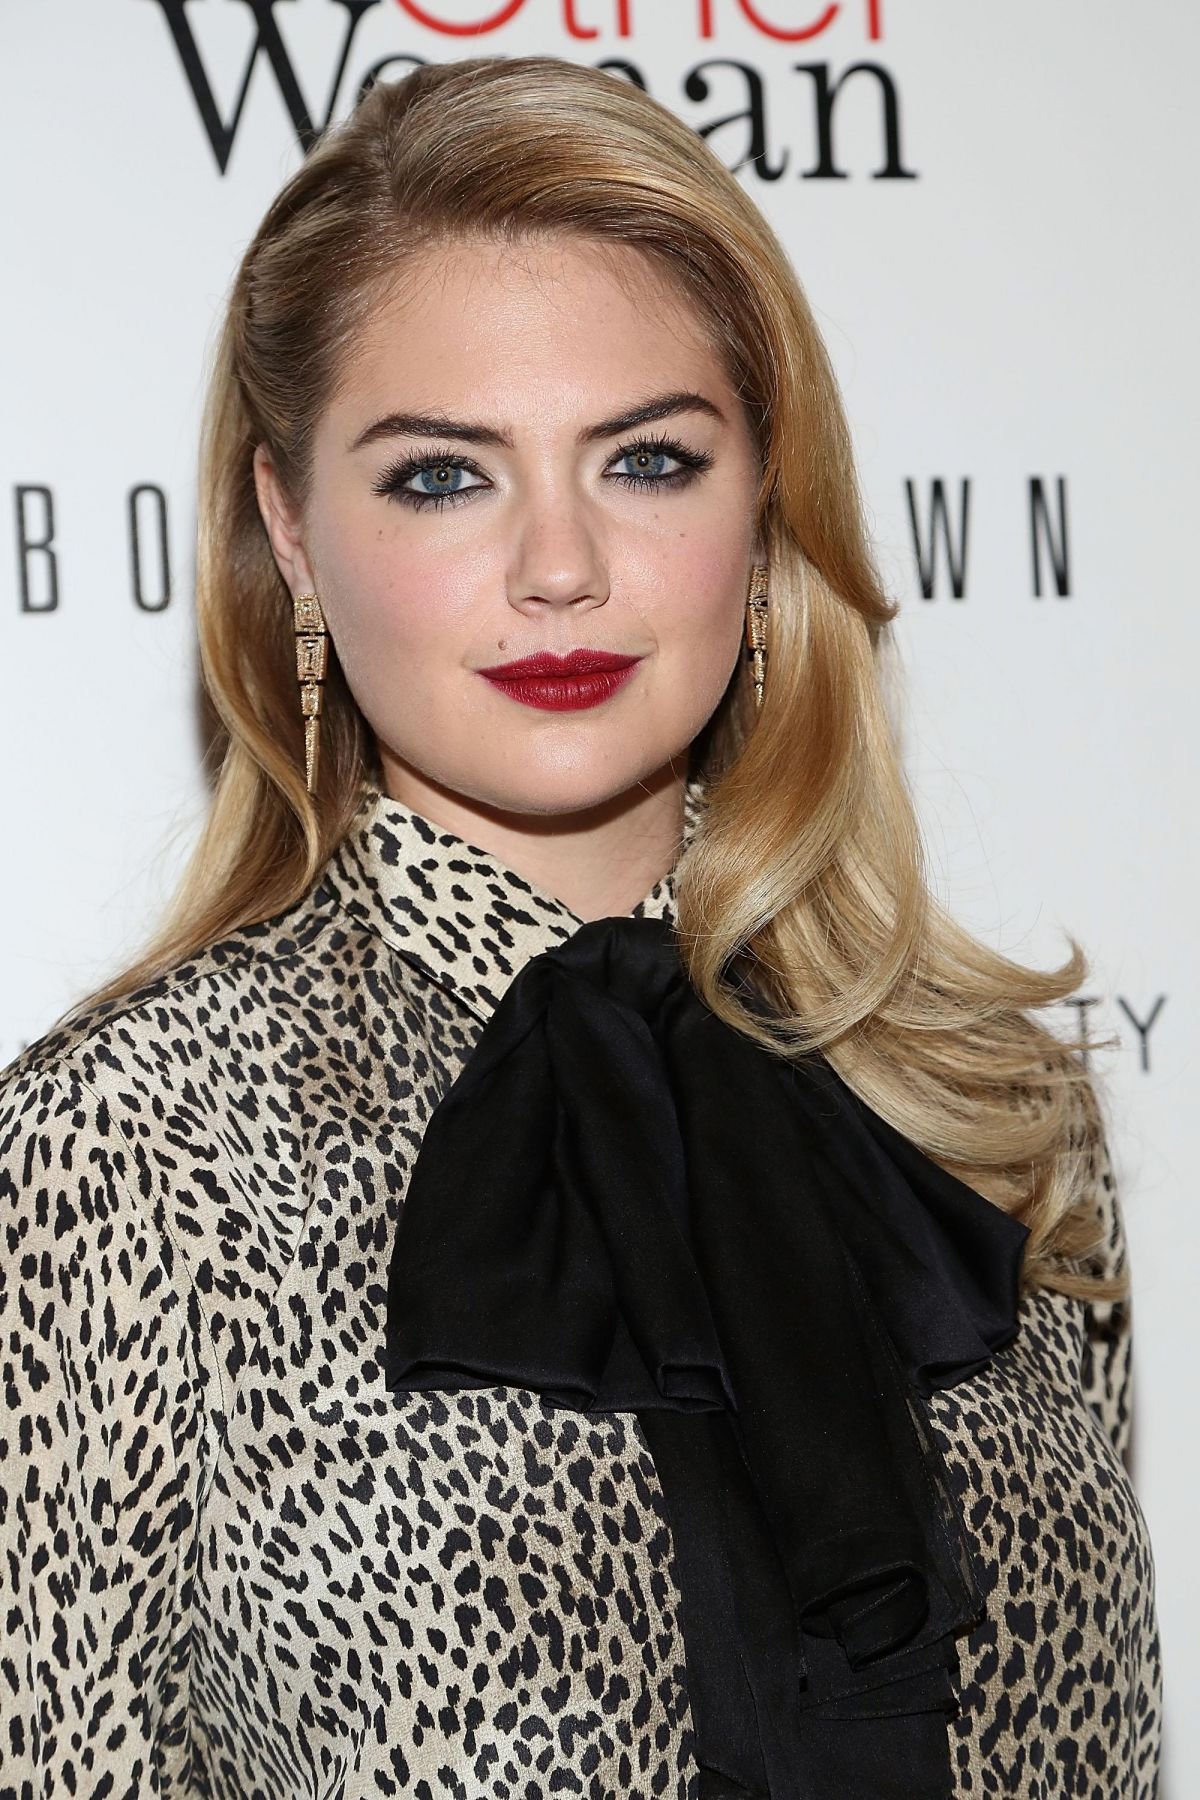 Kate Upton At The Other Woman Screening In New York